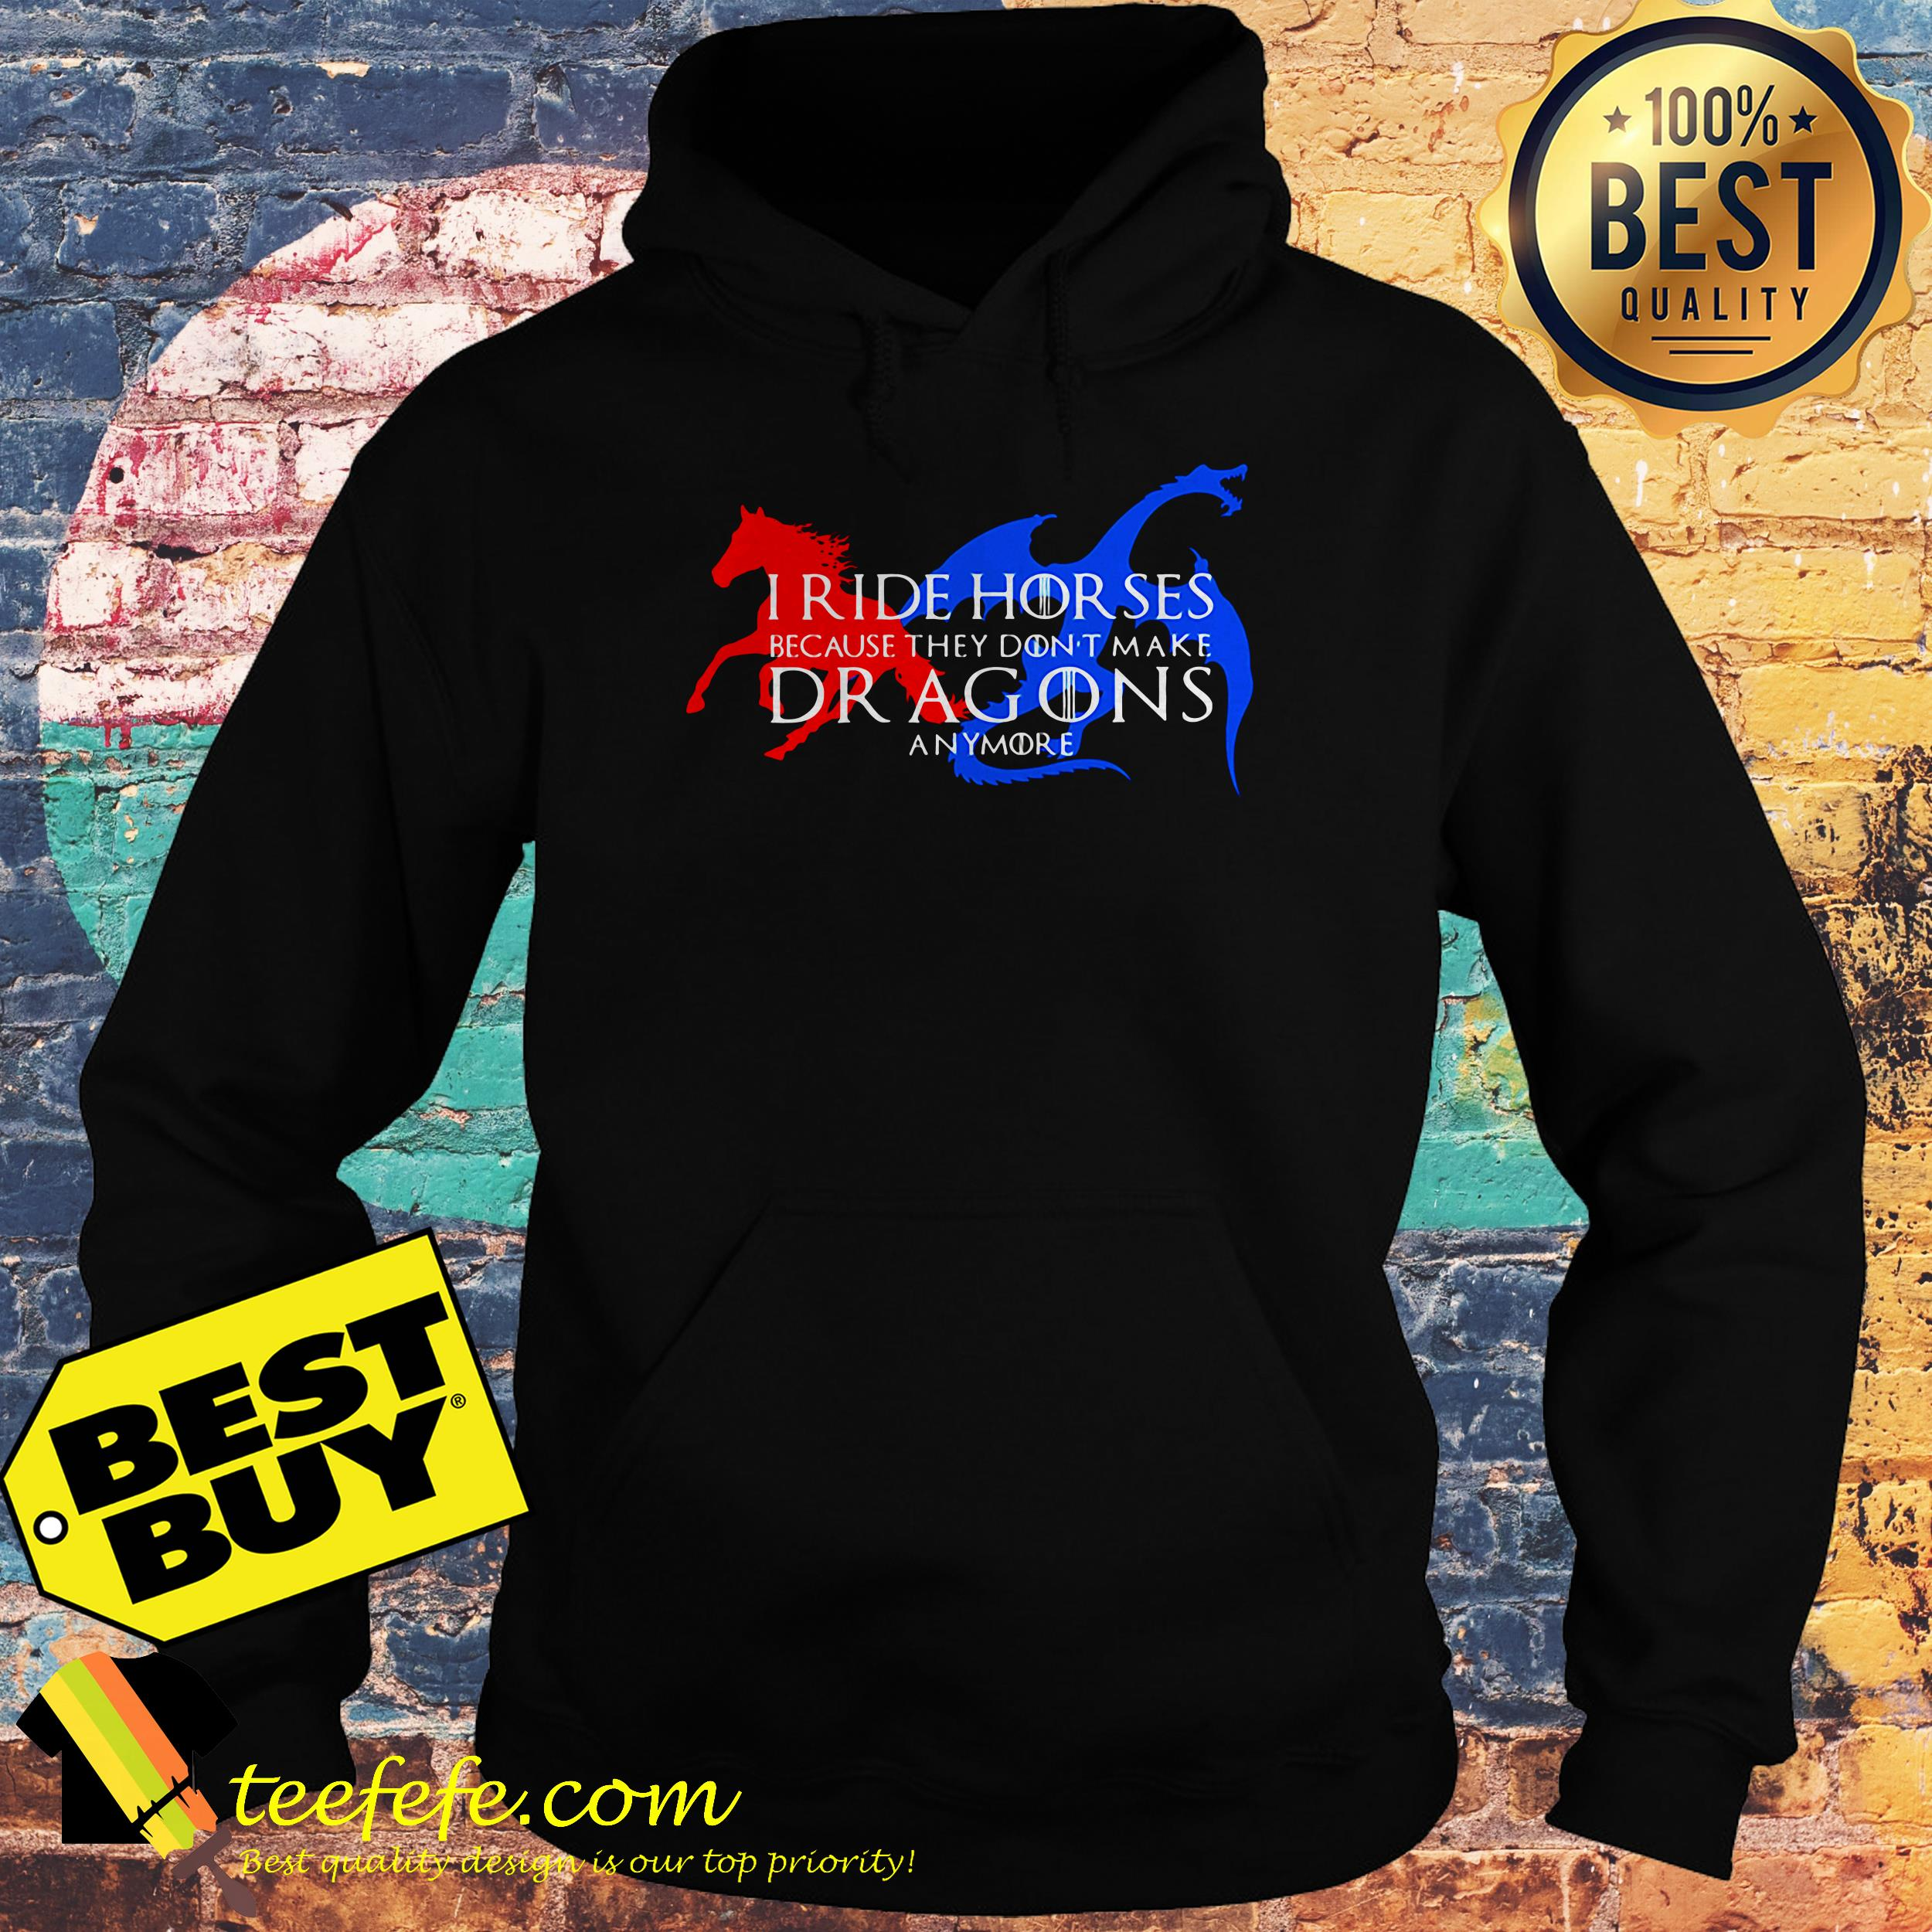 I ride horses because they don't make dragons anymore hoodie